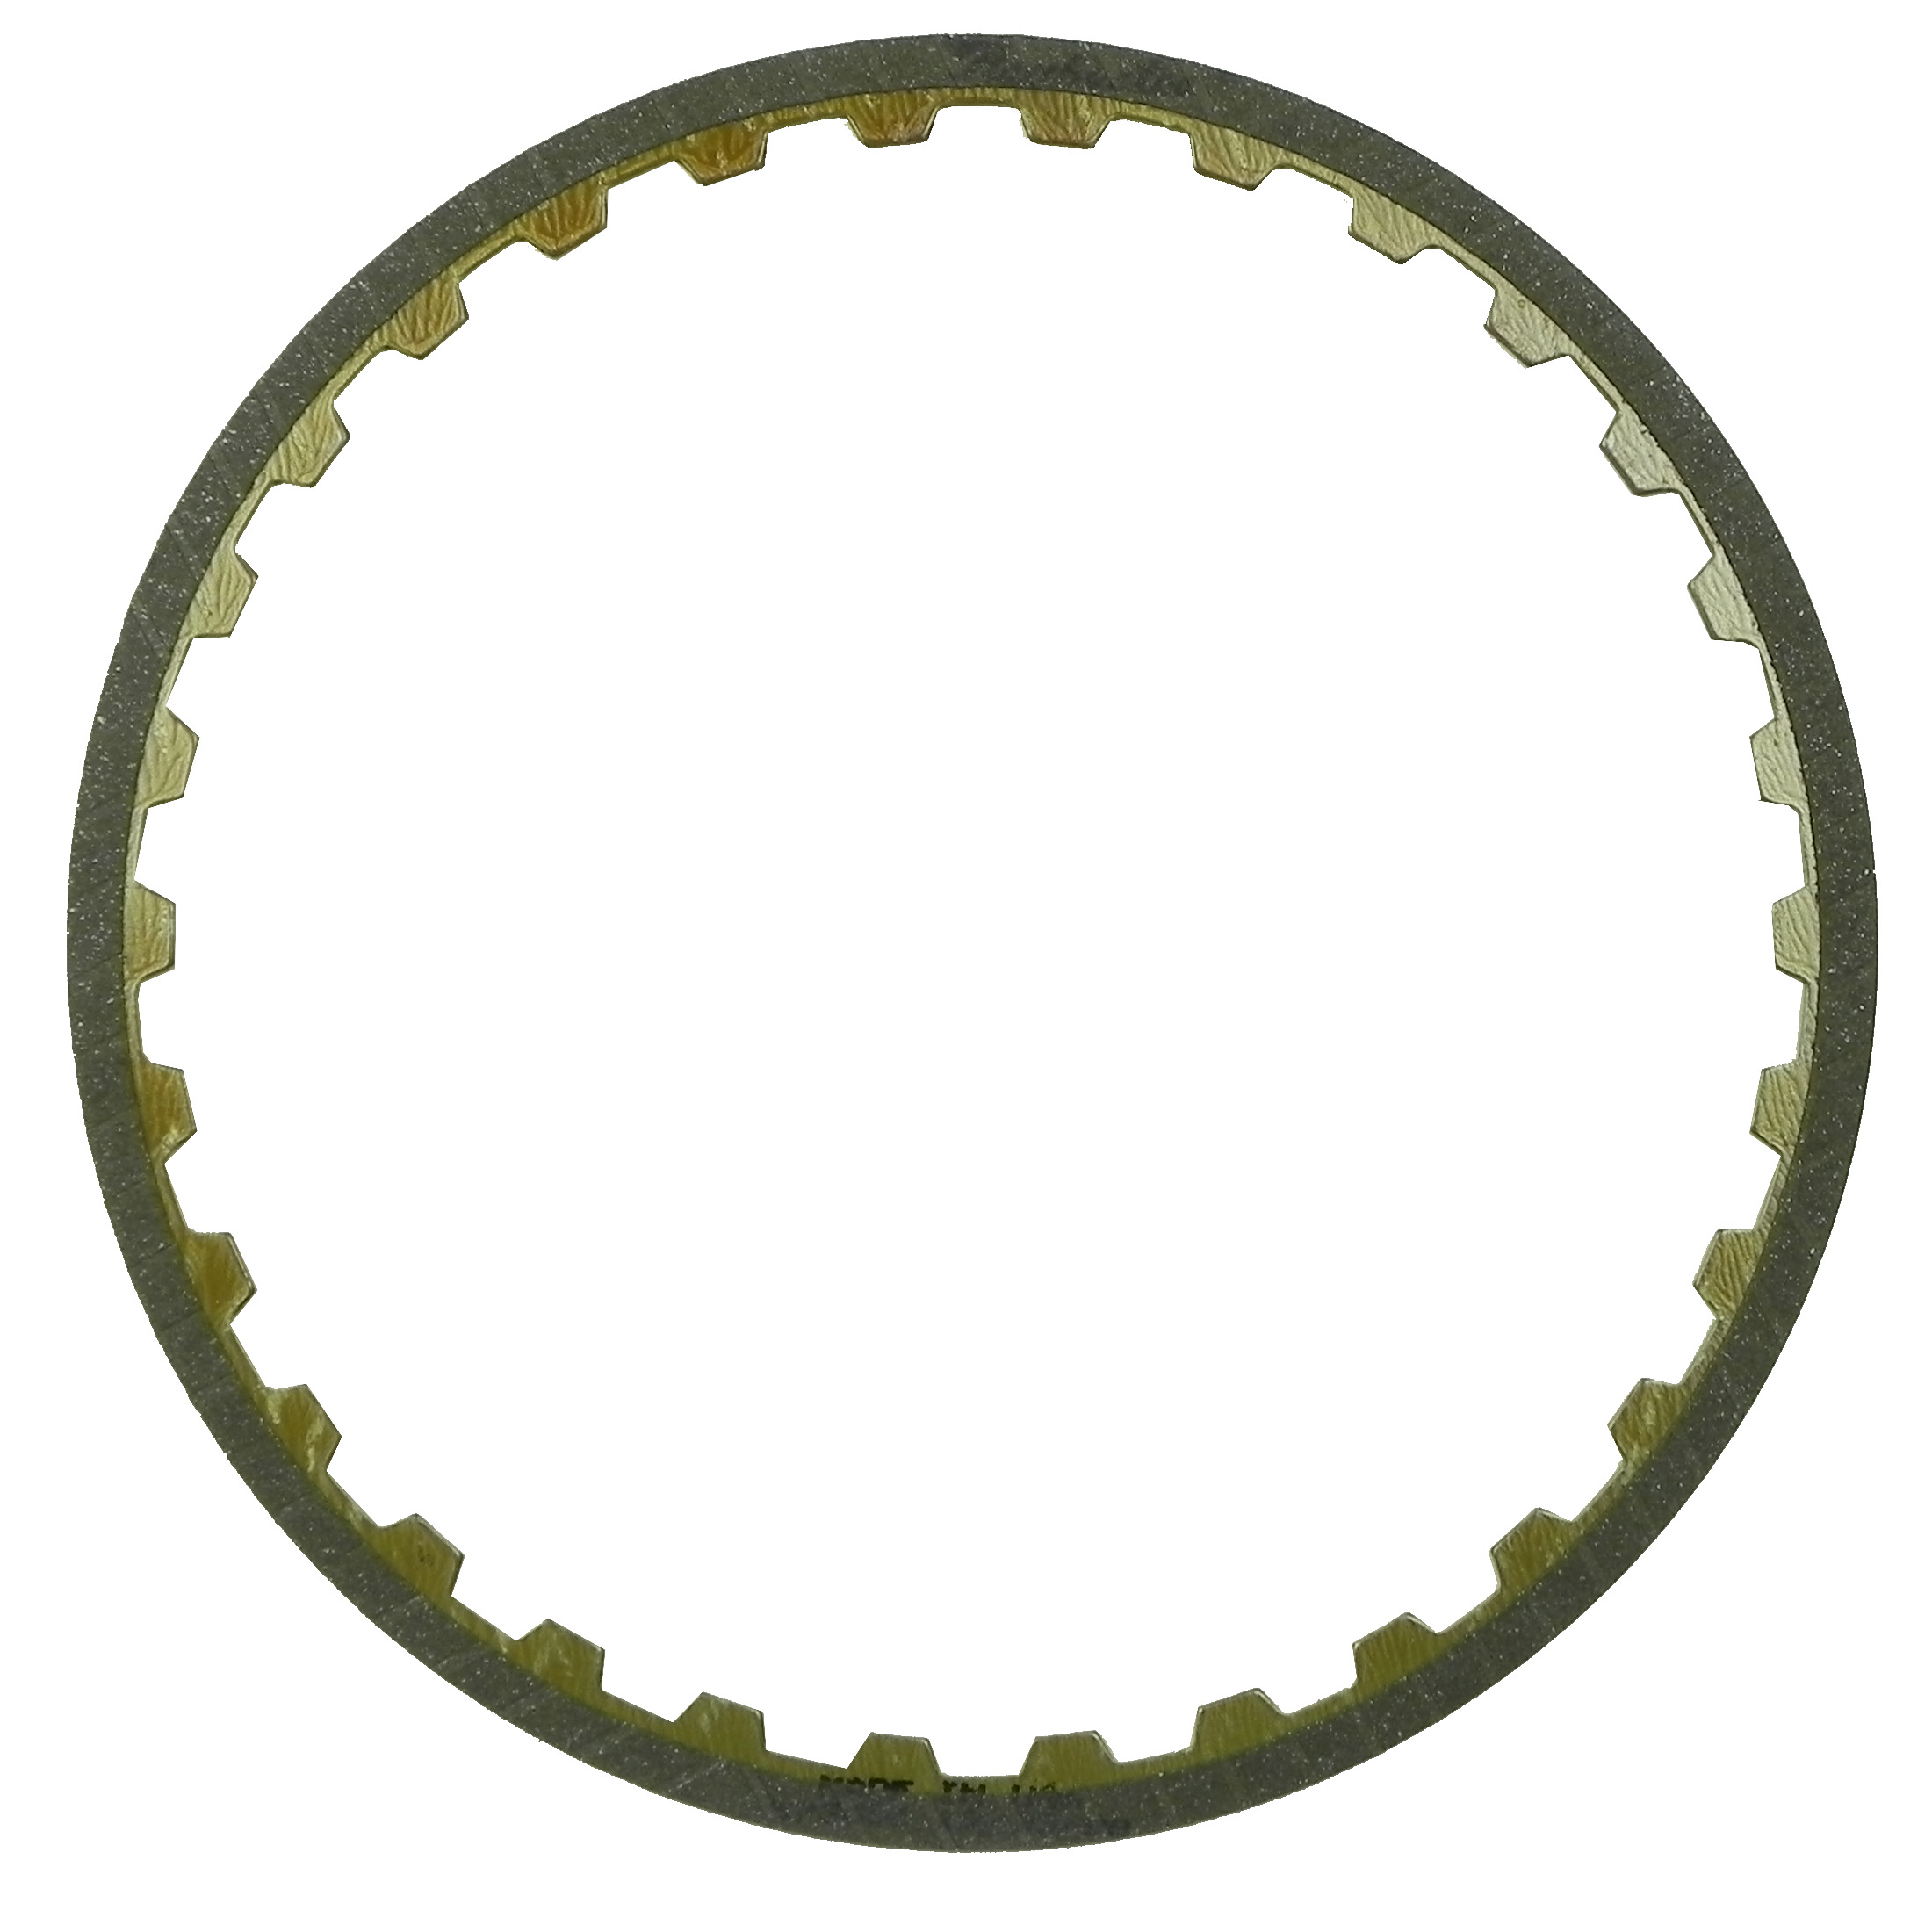 R573655 | 1991-1994 Friction Clutch Plate Graphitic Low, Reverse Graphitic